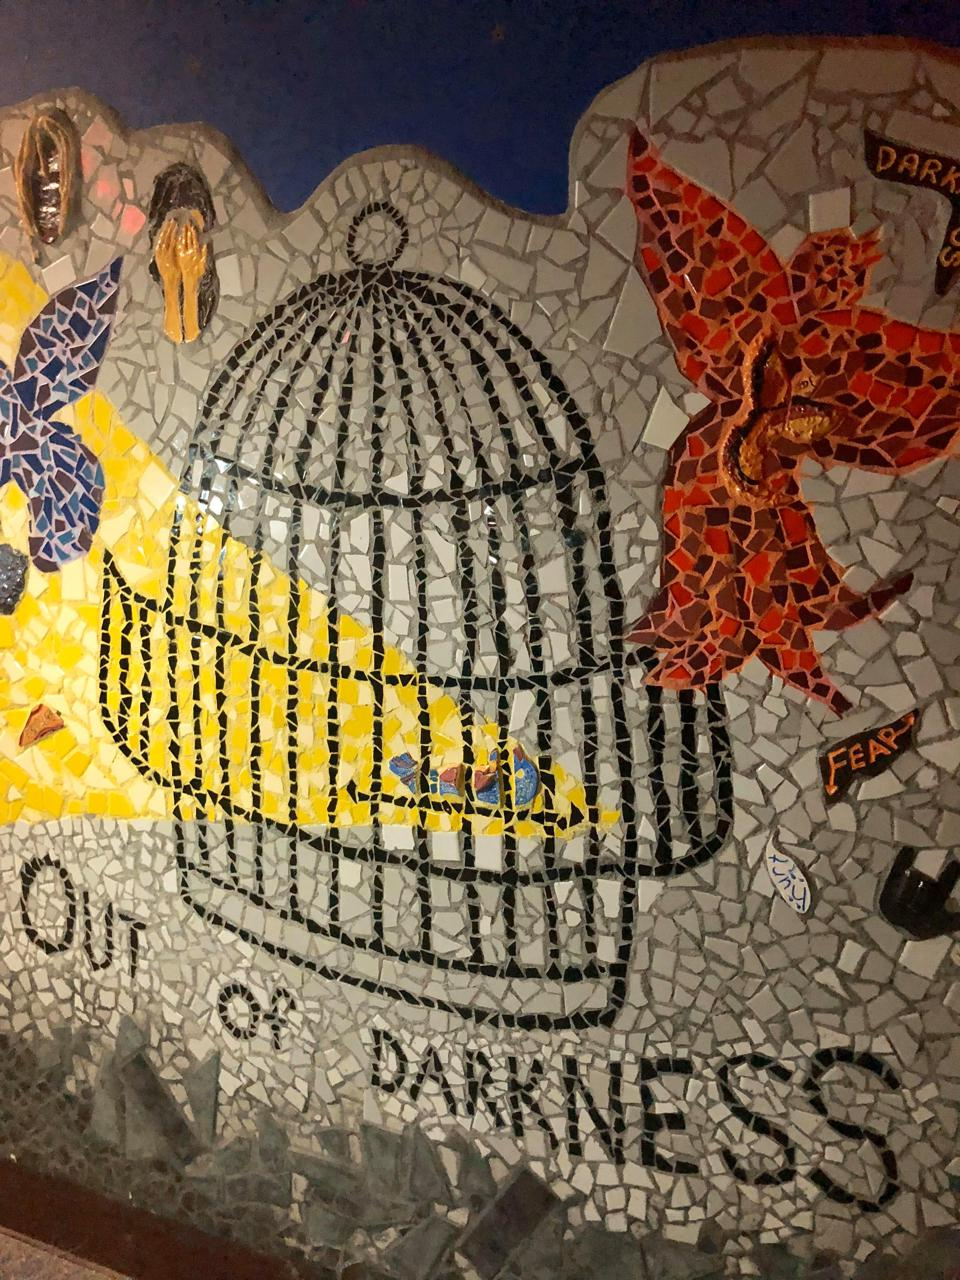 'Birdcage' mosaic, part of 'Out of the Darkness Into the Marvelous Light' project with victims of domestic violence, YMCA Wilmington, Delaware.